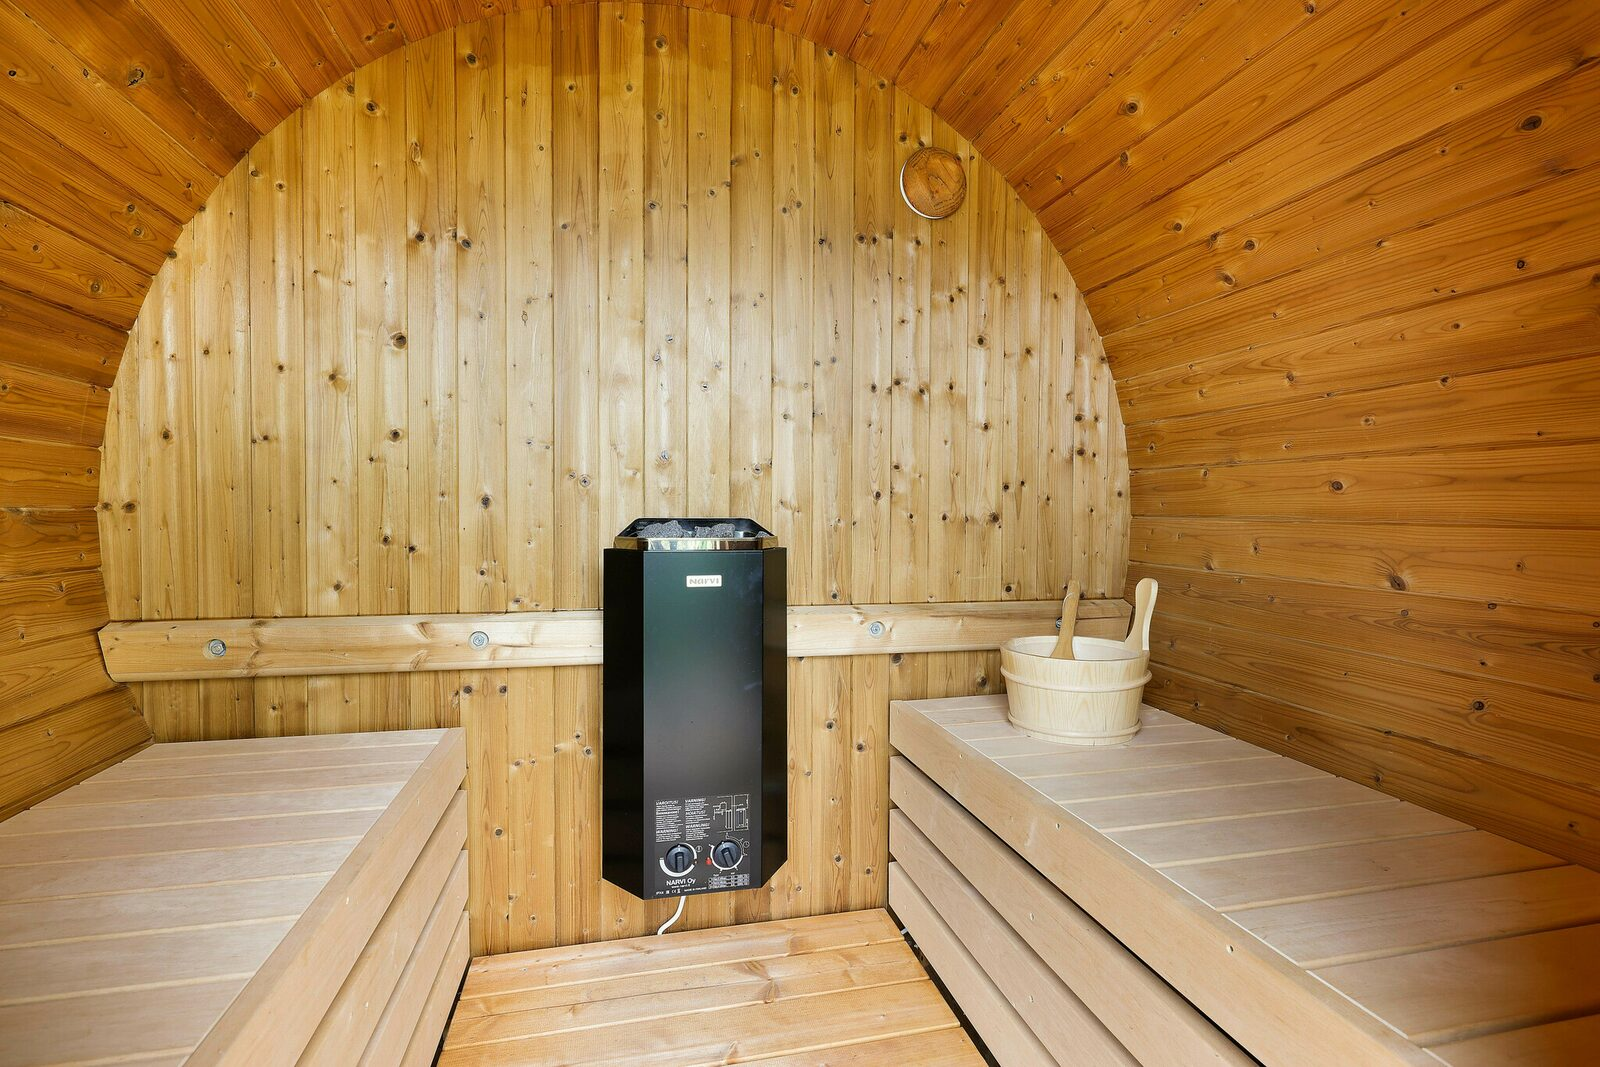 Accommodation for six persons with outdoor sauna & view of the Veluwemeer, three bedrooms